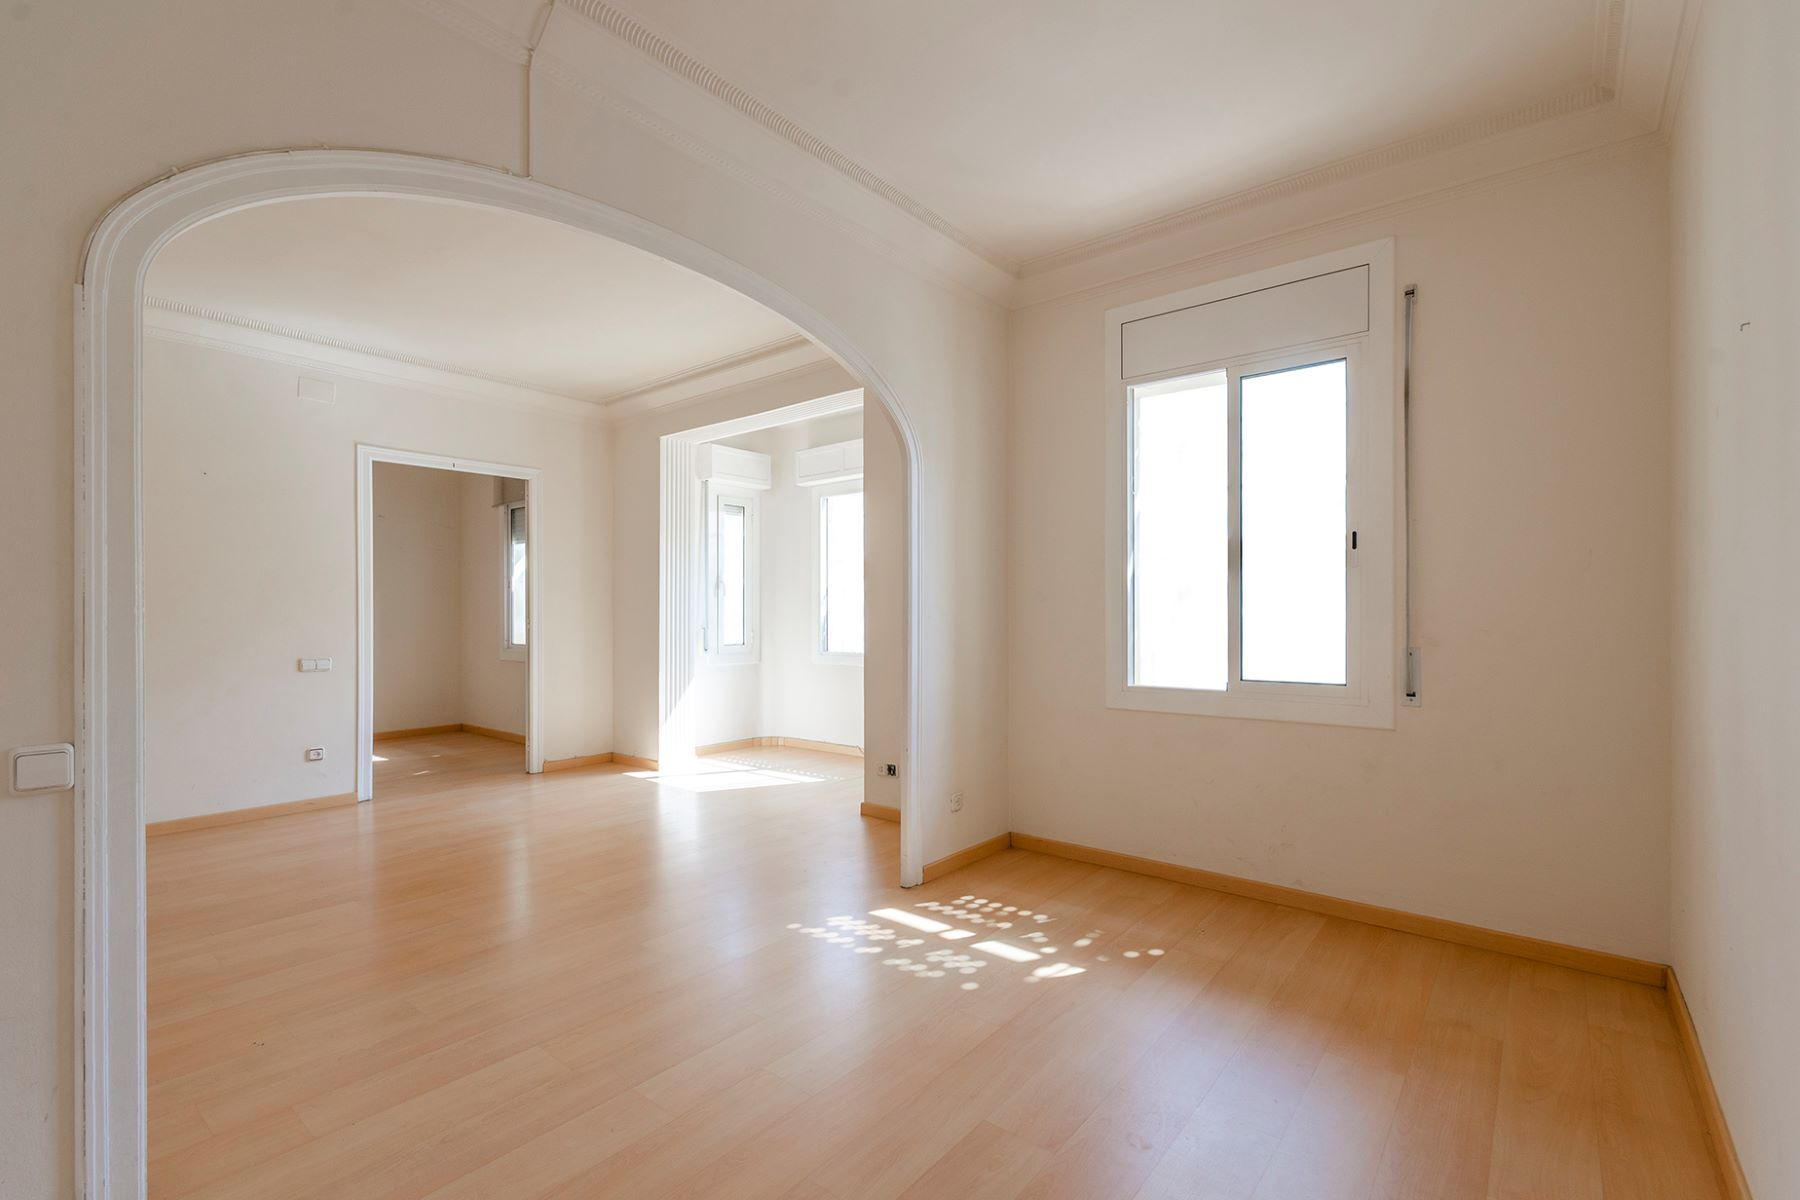 Apartments for Sale at 5-bedroom apartment at Eixample district Barcelona City, Barcelona 08007 Spain